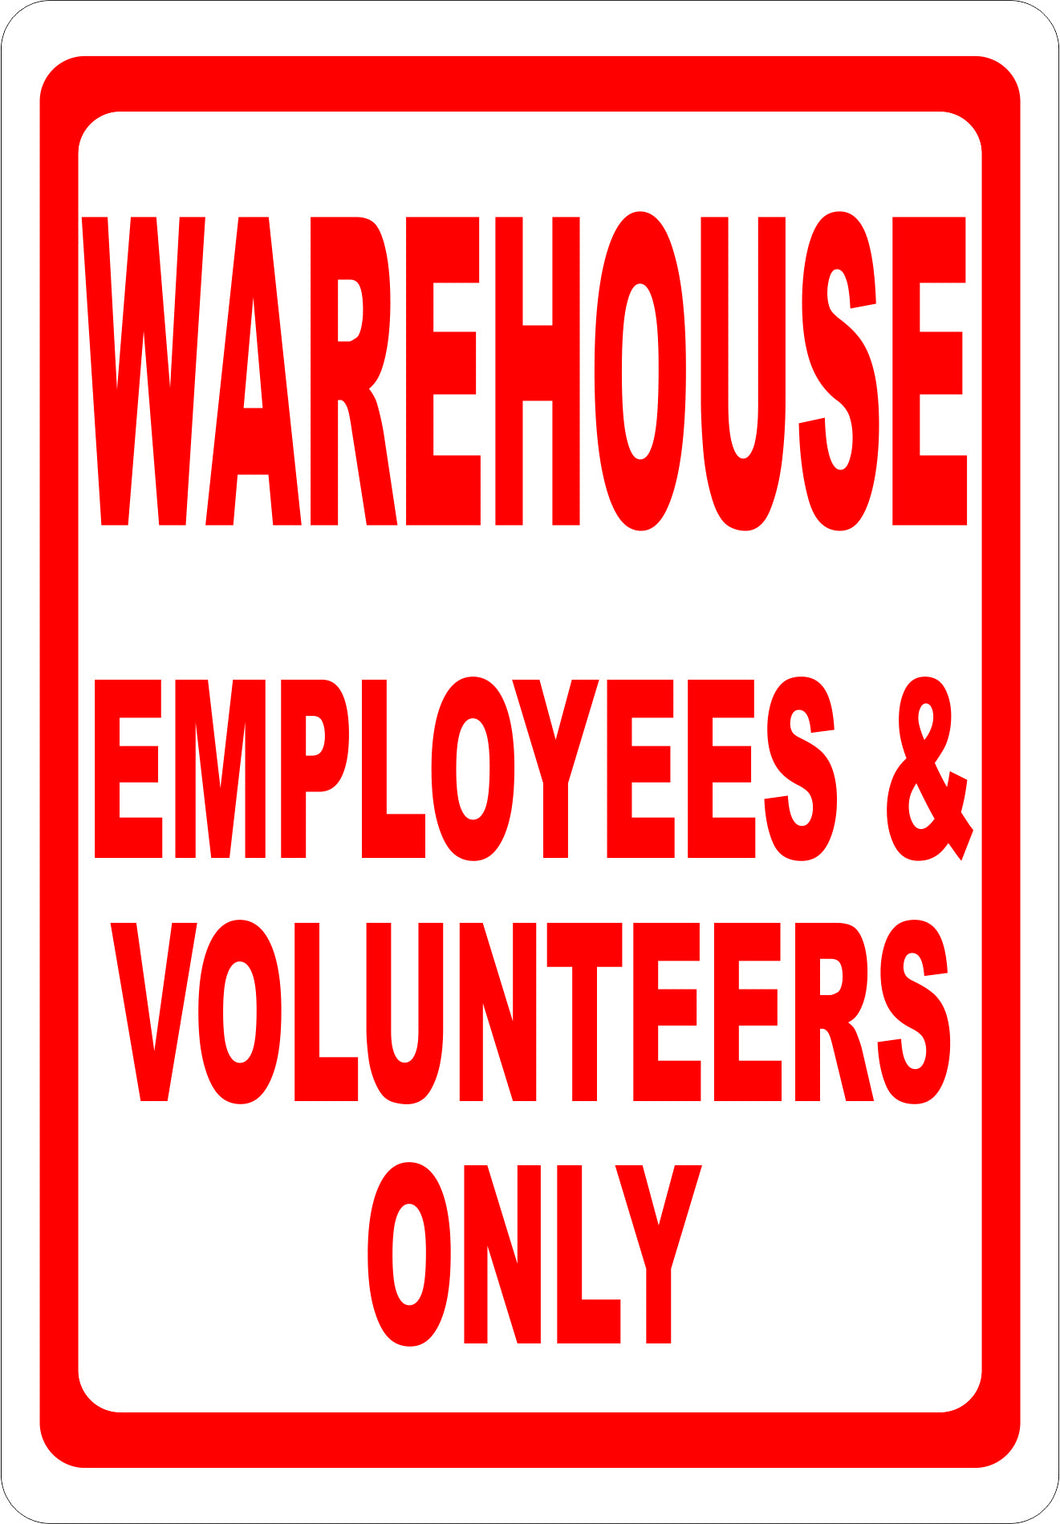 Warehouse Employees & Volunteers Only Sign - Signs & Decals by SalaGraphics